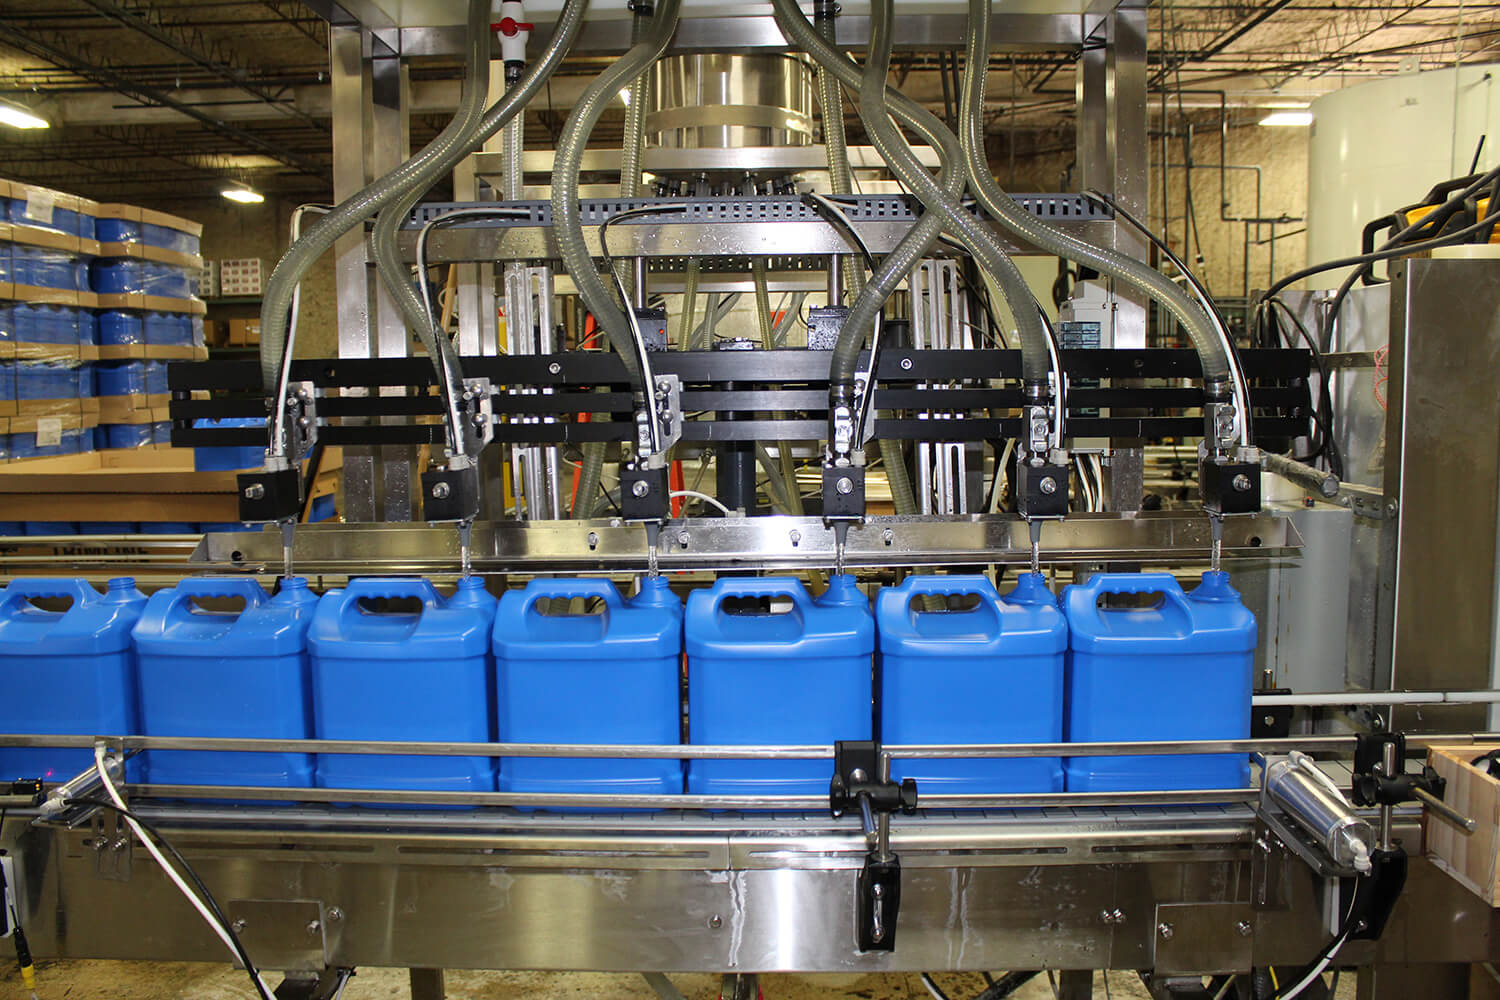 Blue containers being filled with liquid on a conveyor at a packaging plant